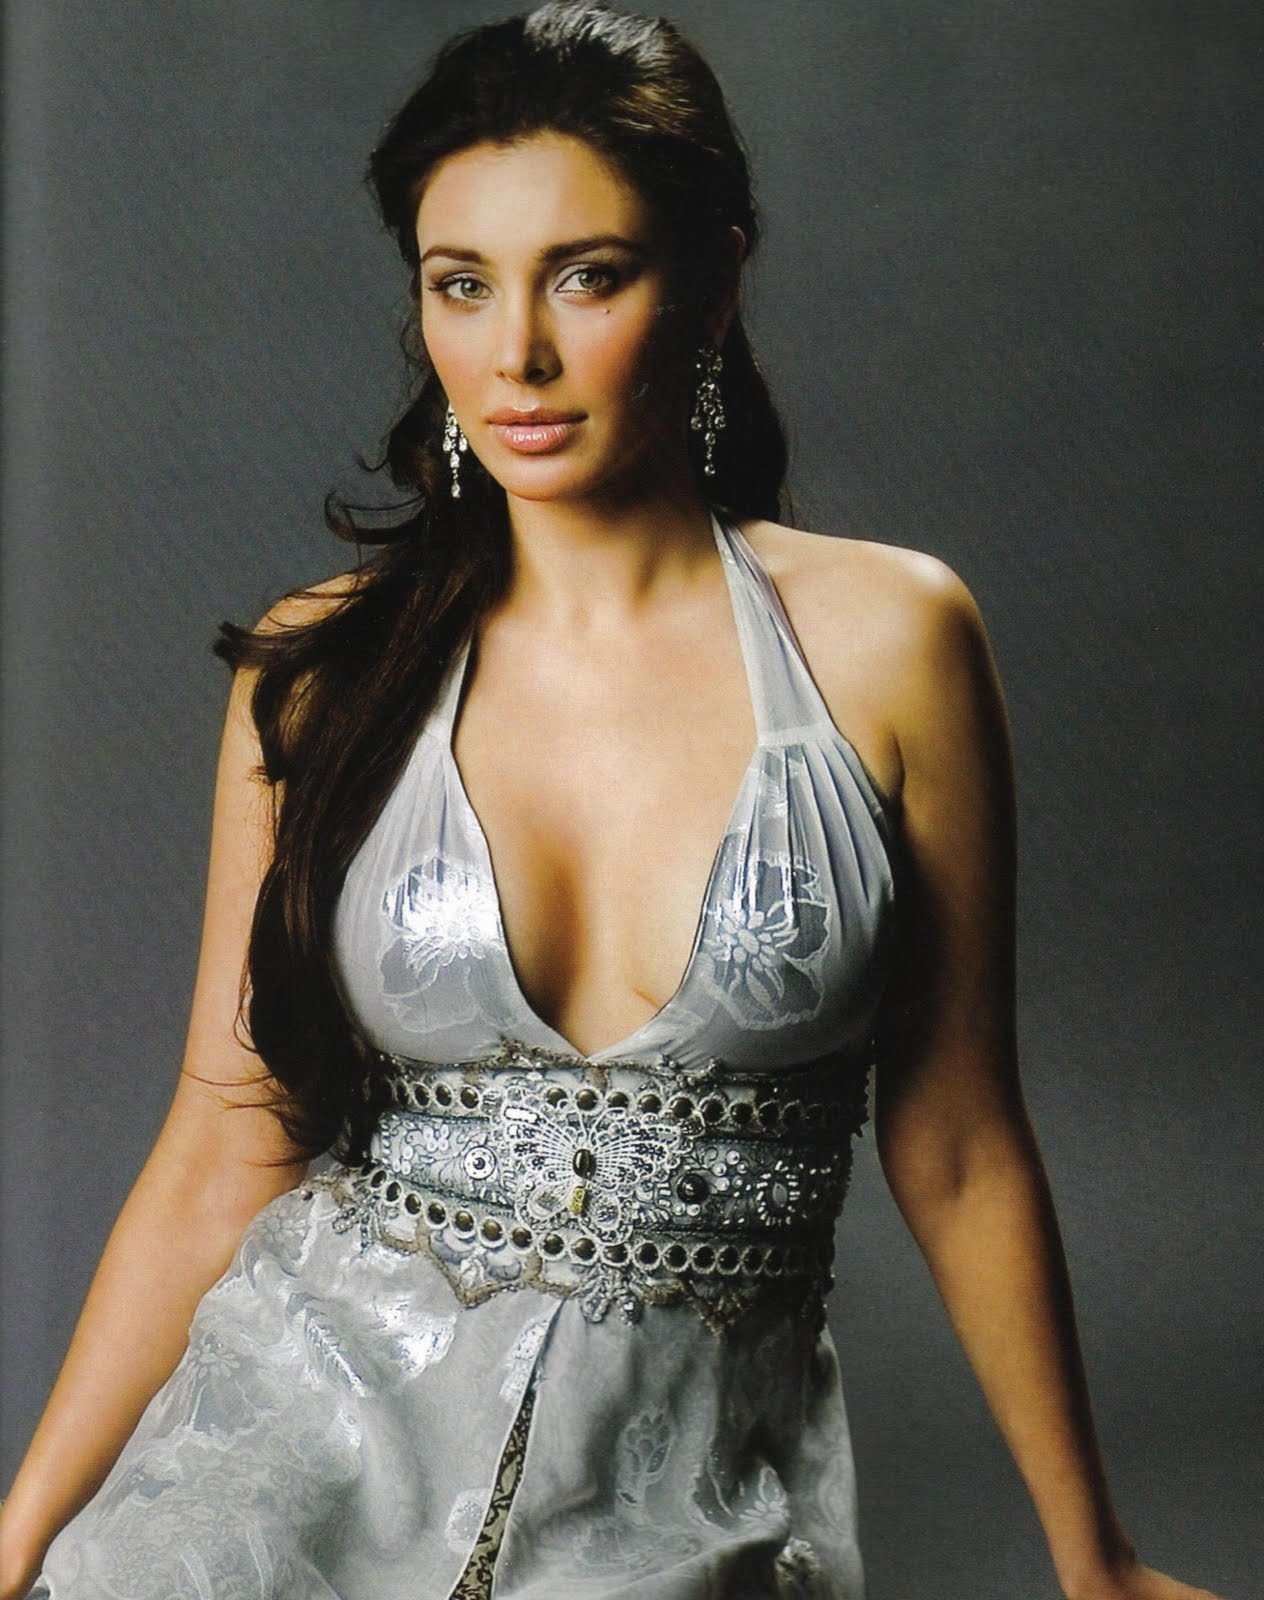 Very Sexy Wallpapers 2012: Lisa Ray Unseen Hot Wallpapers